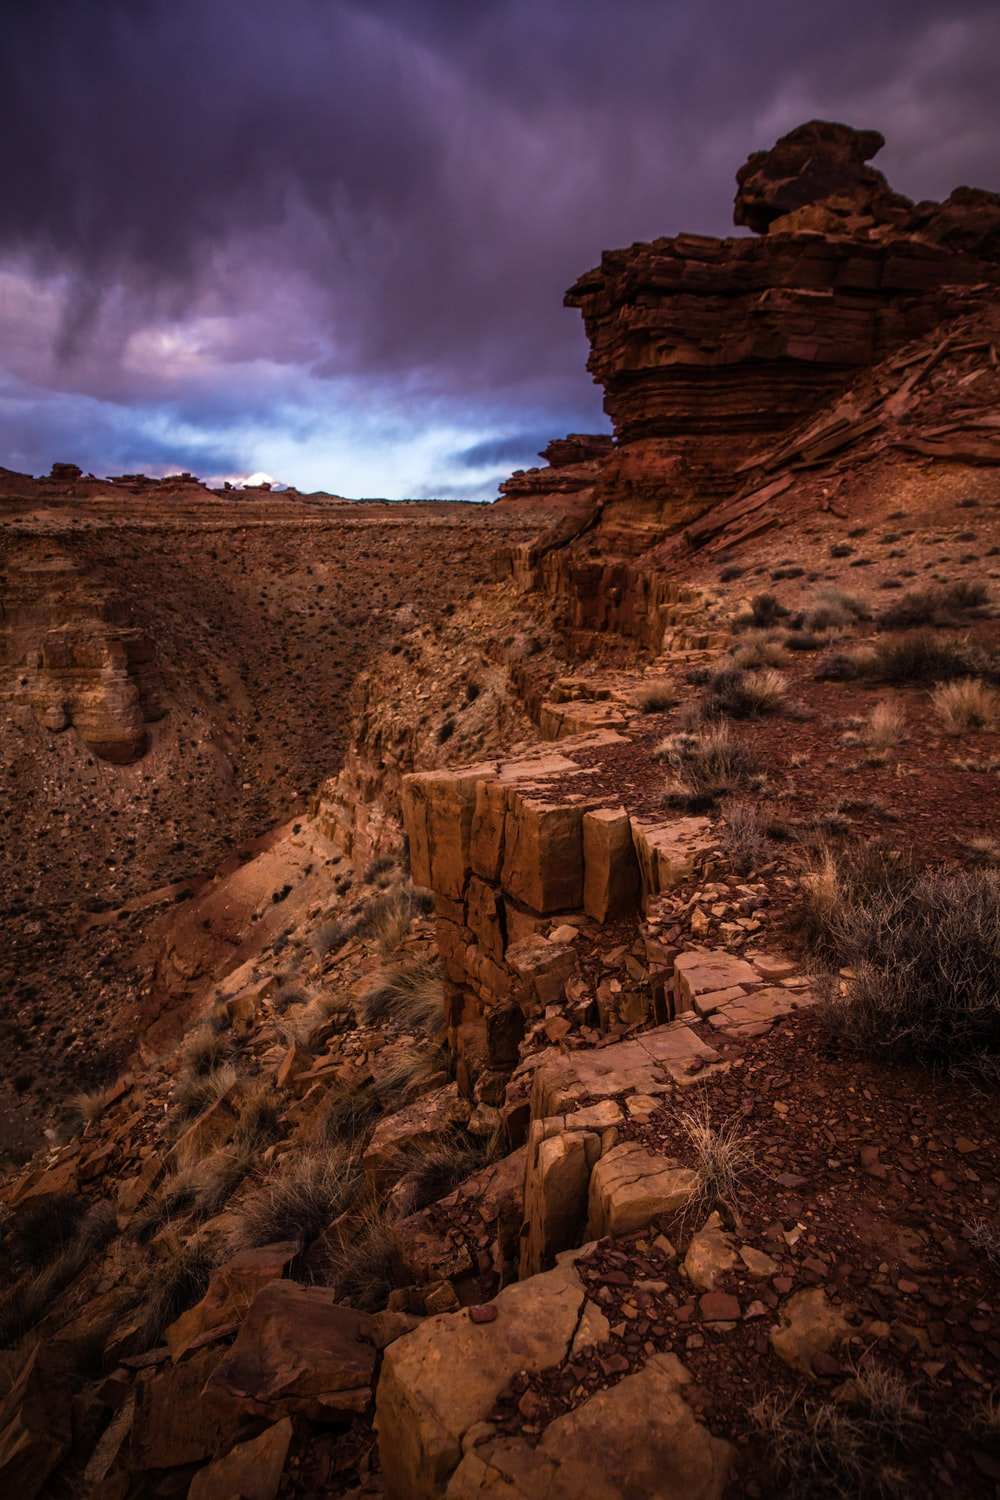 brown canyon under gray clouds at daytime